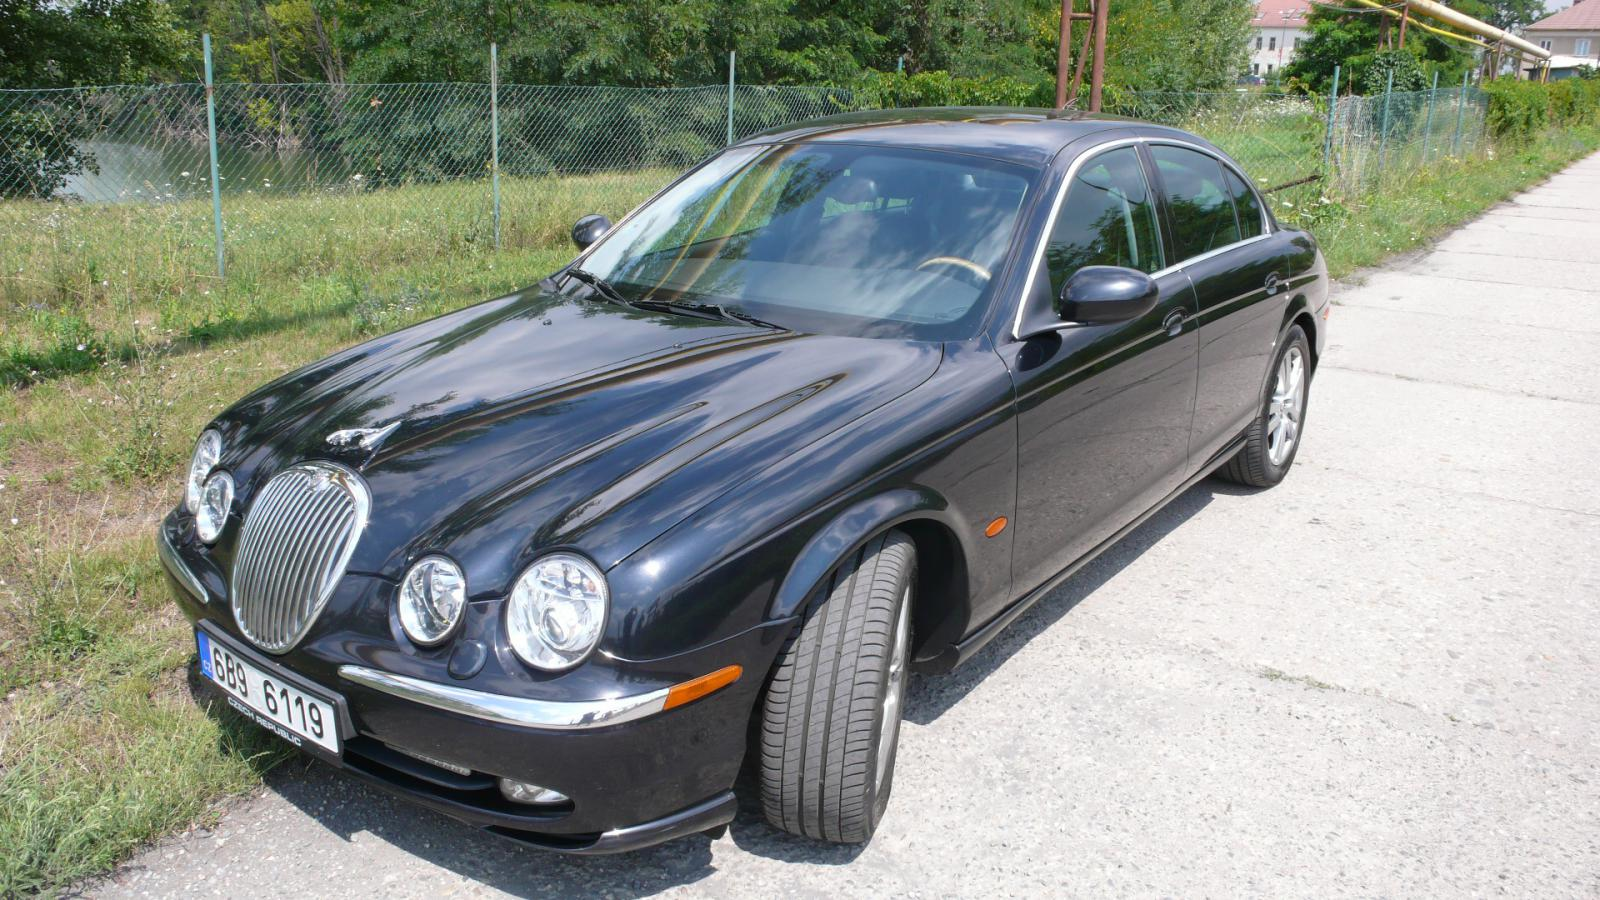 2003 jaguar s type v8 gasoline. Black Bedroom Furniture Sets. Home Design Ideas